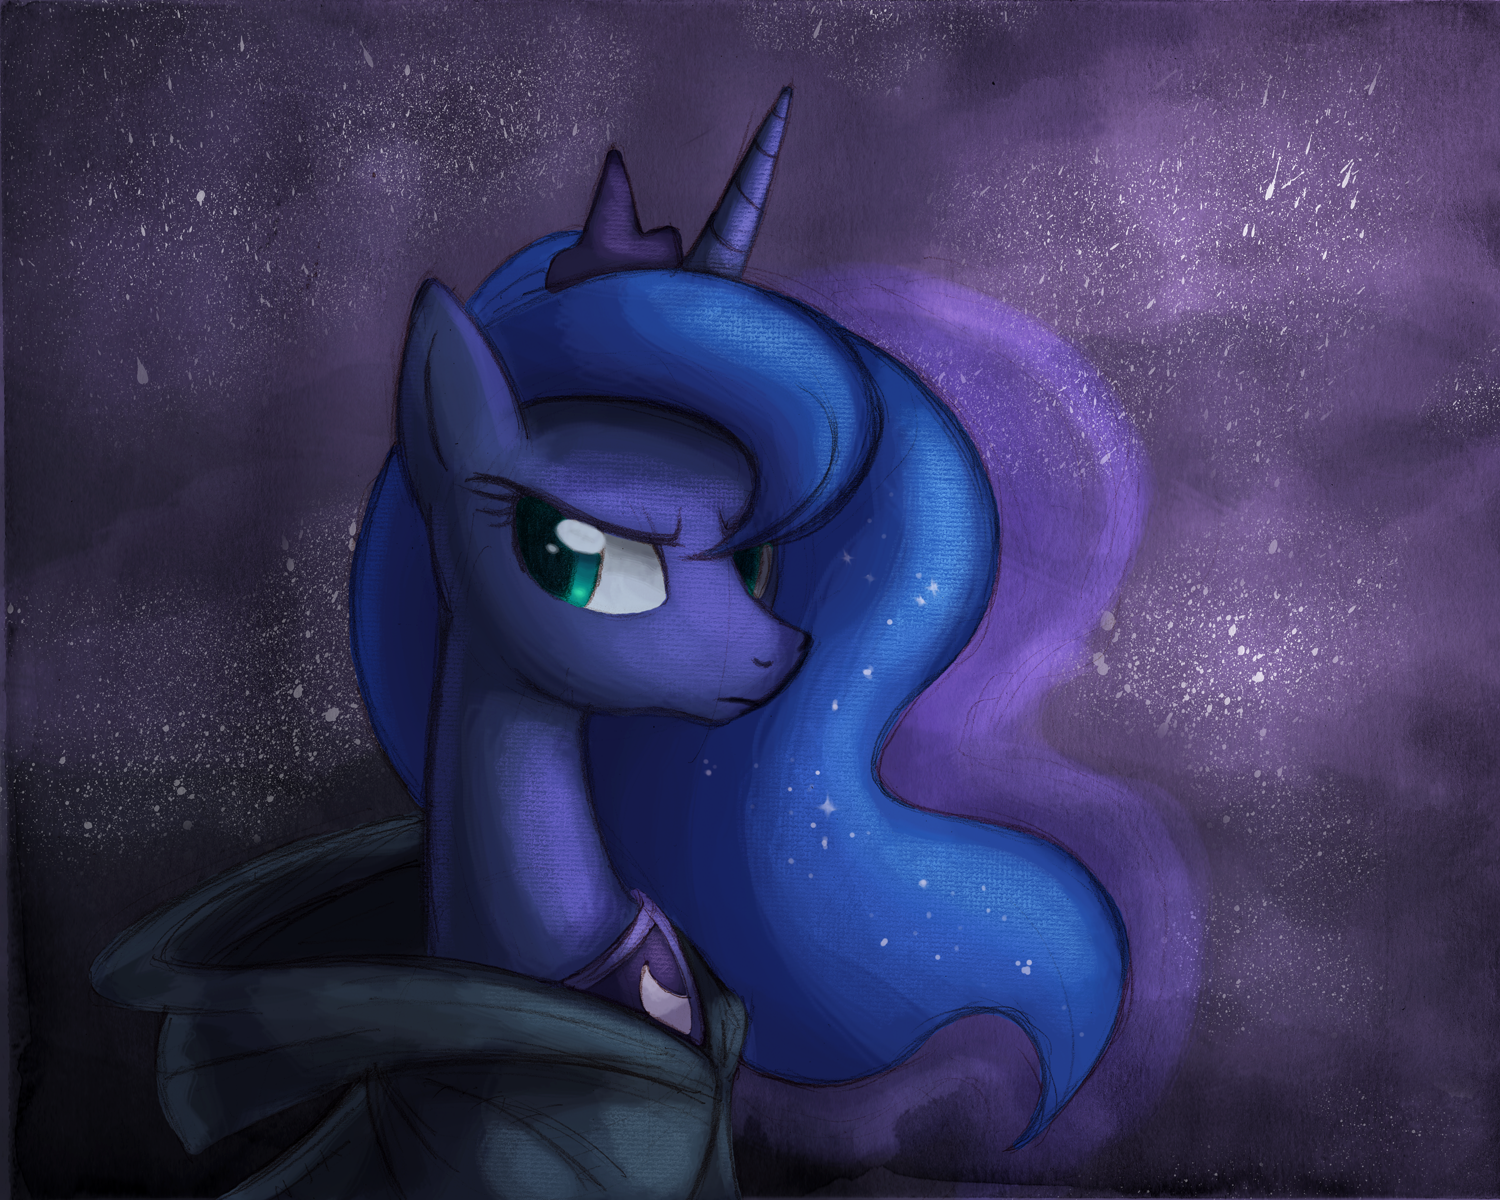 princess_luna_with_cloak_by_ric_m-d50i4g